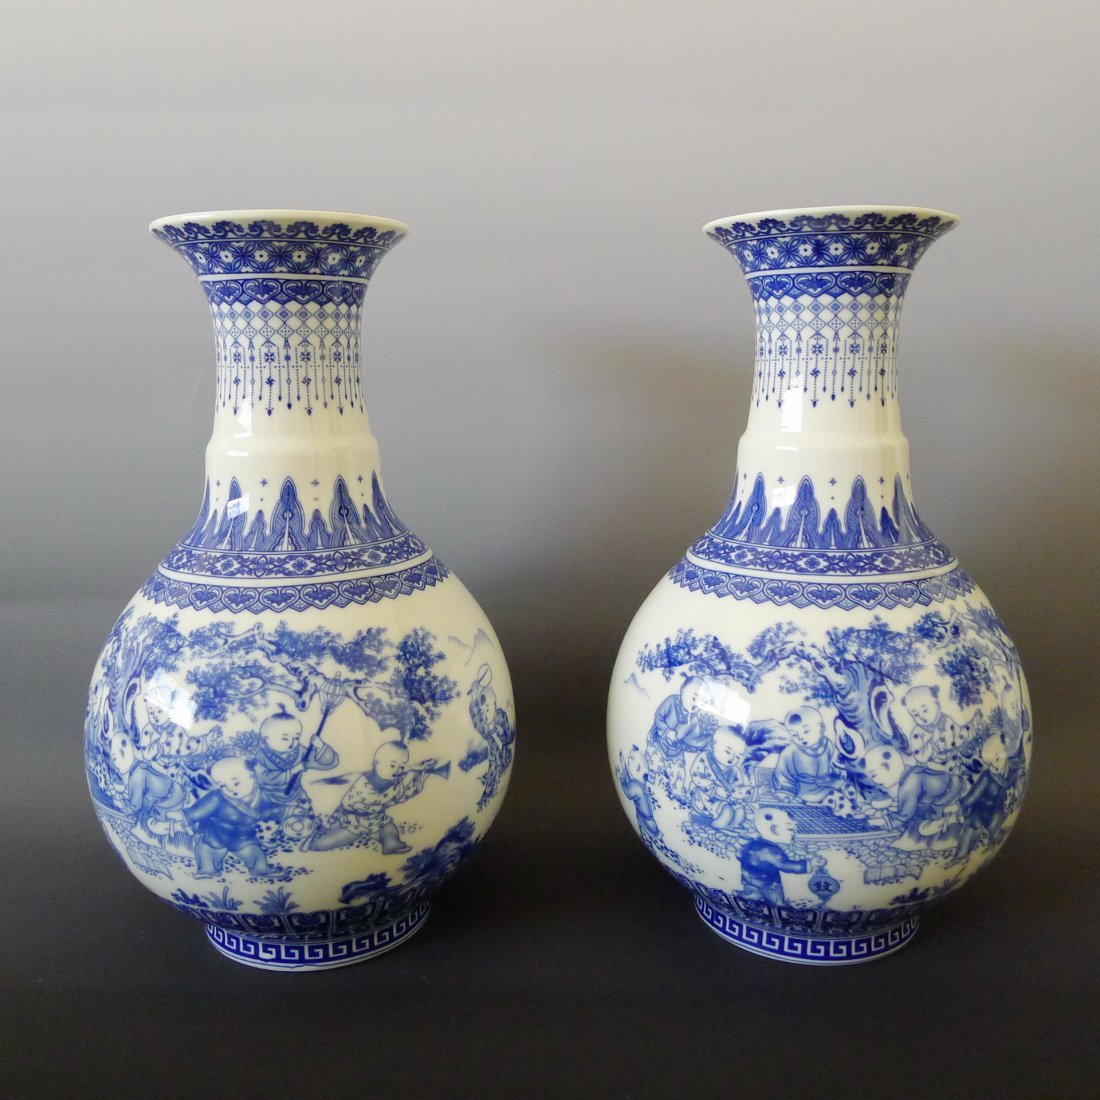 A PAIR OF BLUE & WHITE PORCELAIN VASES